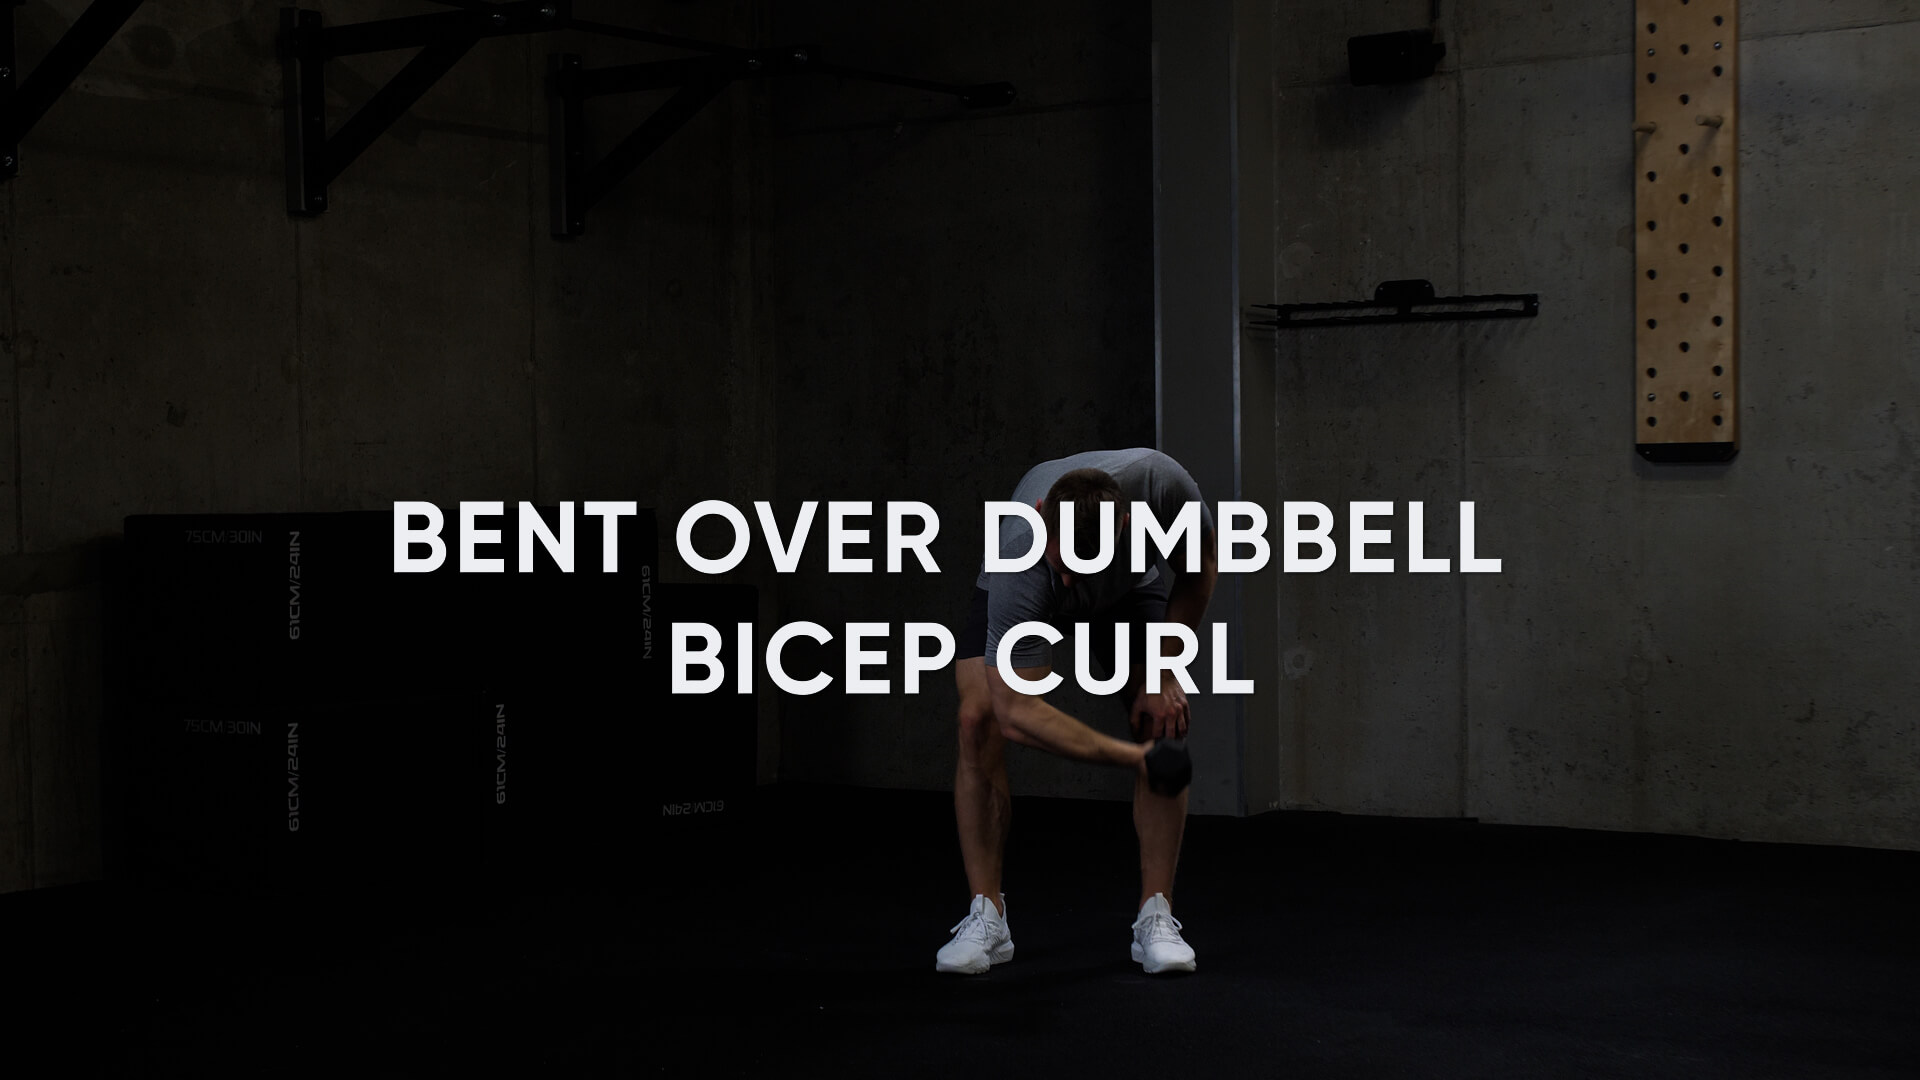 Bent Over Dumbbell Bicep Curl